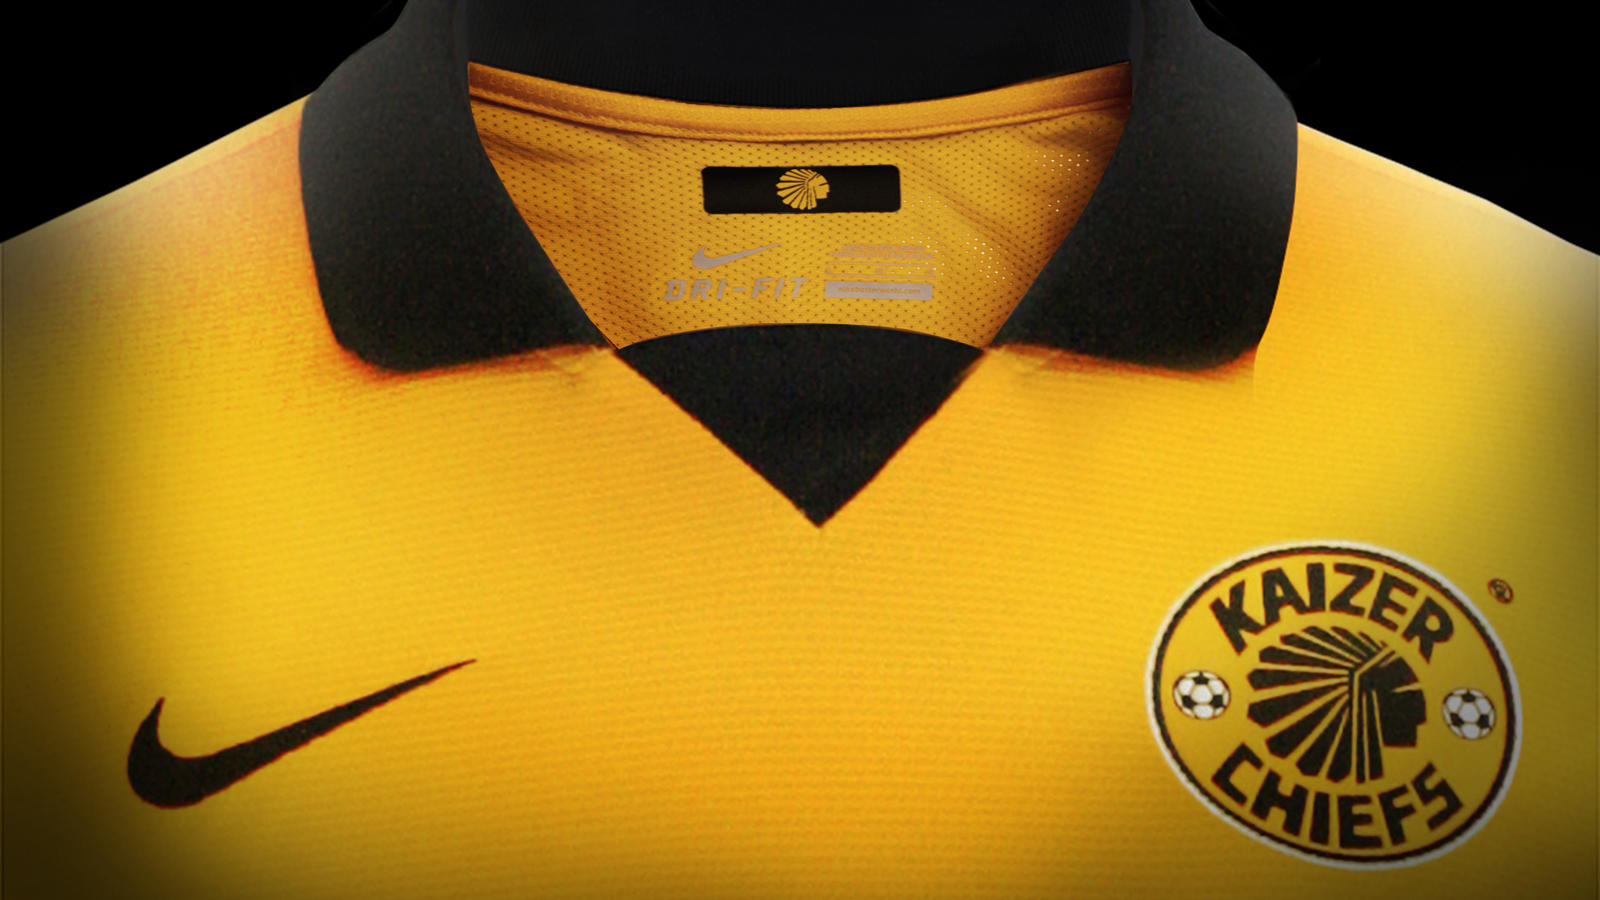 Nike News - Kaizer Chiefs and Nike Unveil New Home Kit for ...